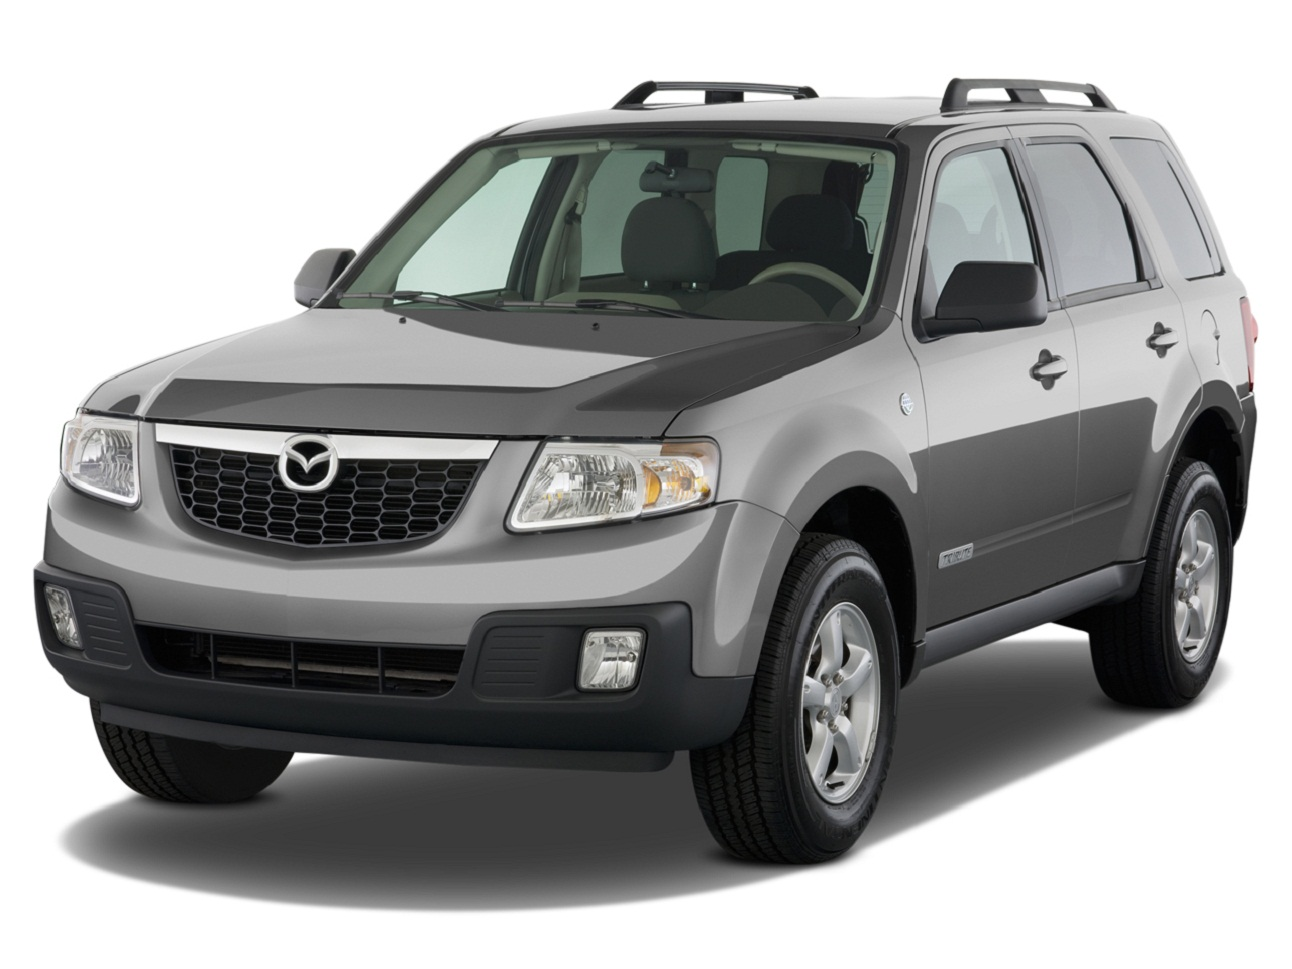 Gray Mazda Tribute 2011